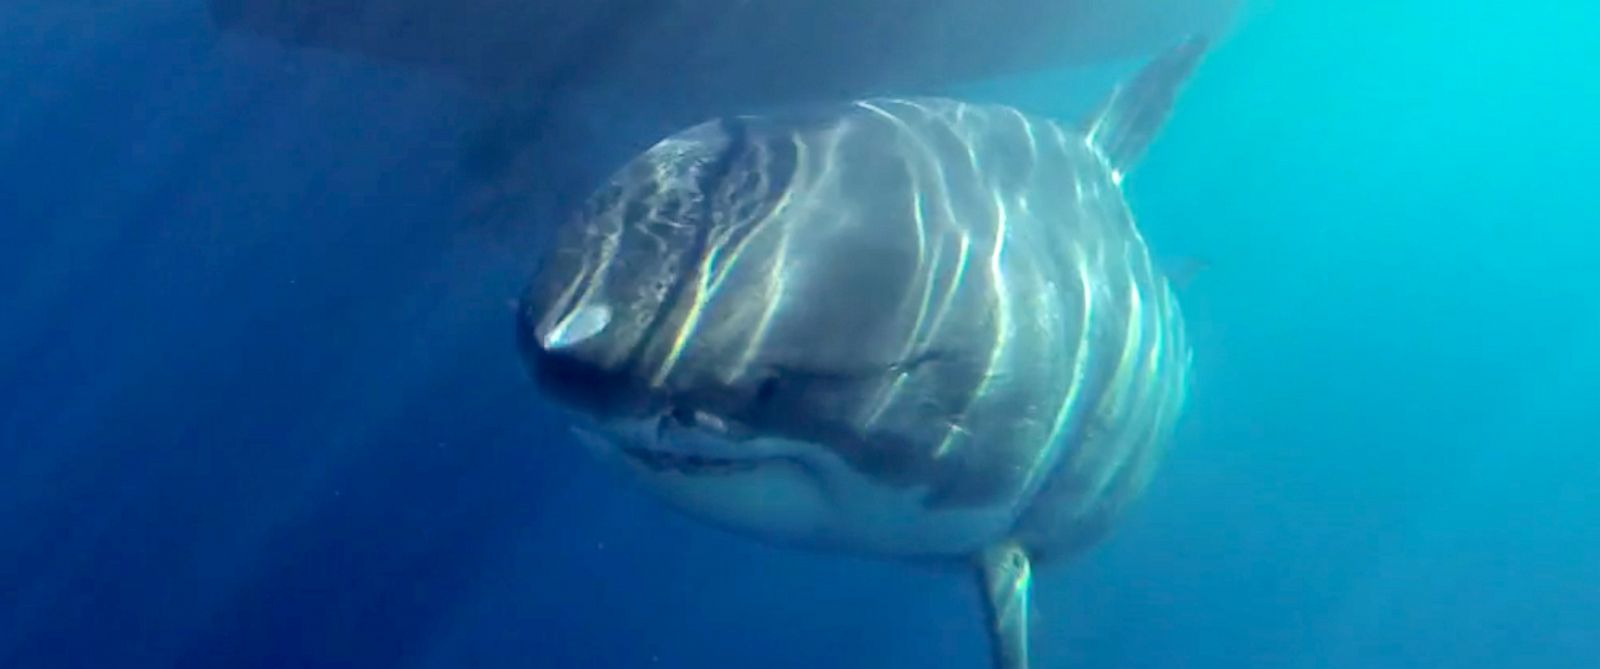 PHOTO: Deep Blue will be featured on Shweekend premiering on Discovery Aug 29 and 30th.